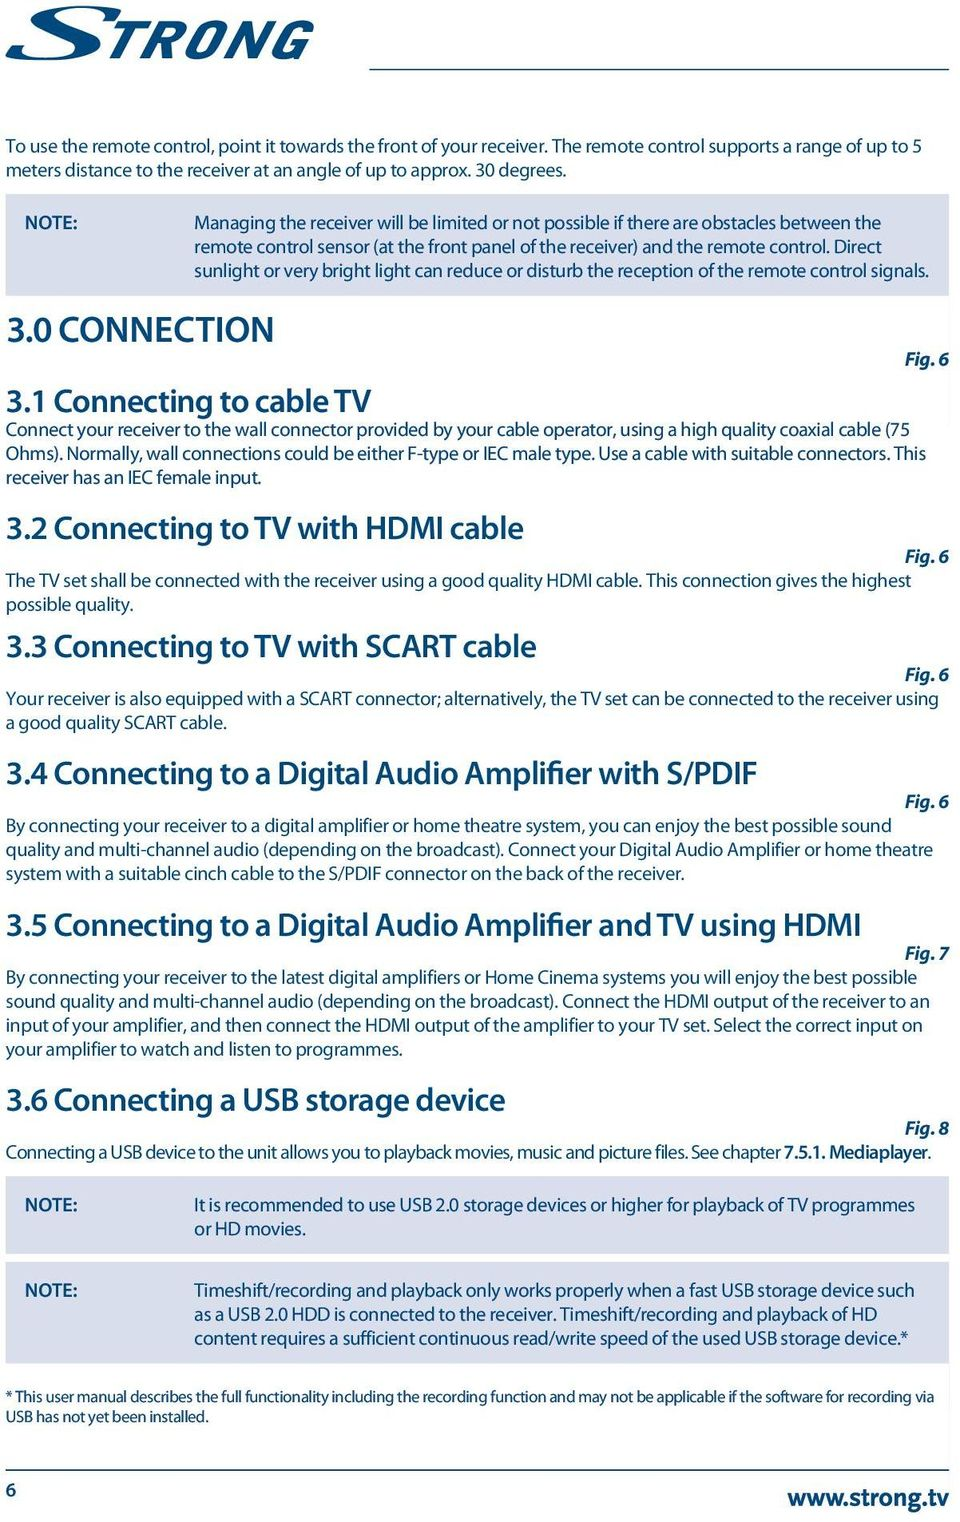 Digital High Definition Cable Receiver Pdf Wiring Diagram Home Theater Amplifier 5 1 Direct Sunlight Or Very Bright Light Can Reduce Disturb The Reception Of Remote Control